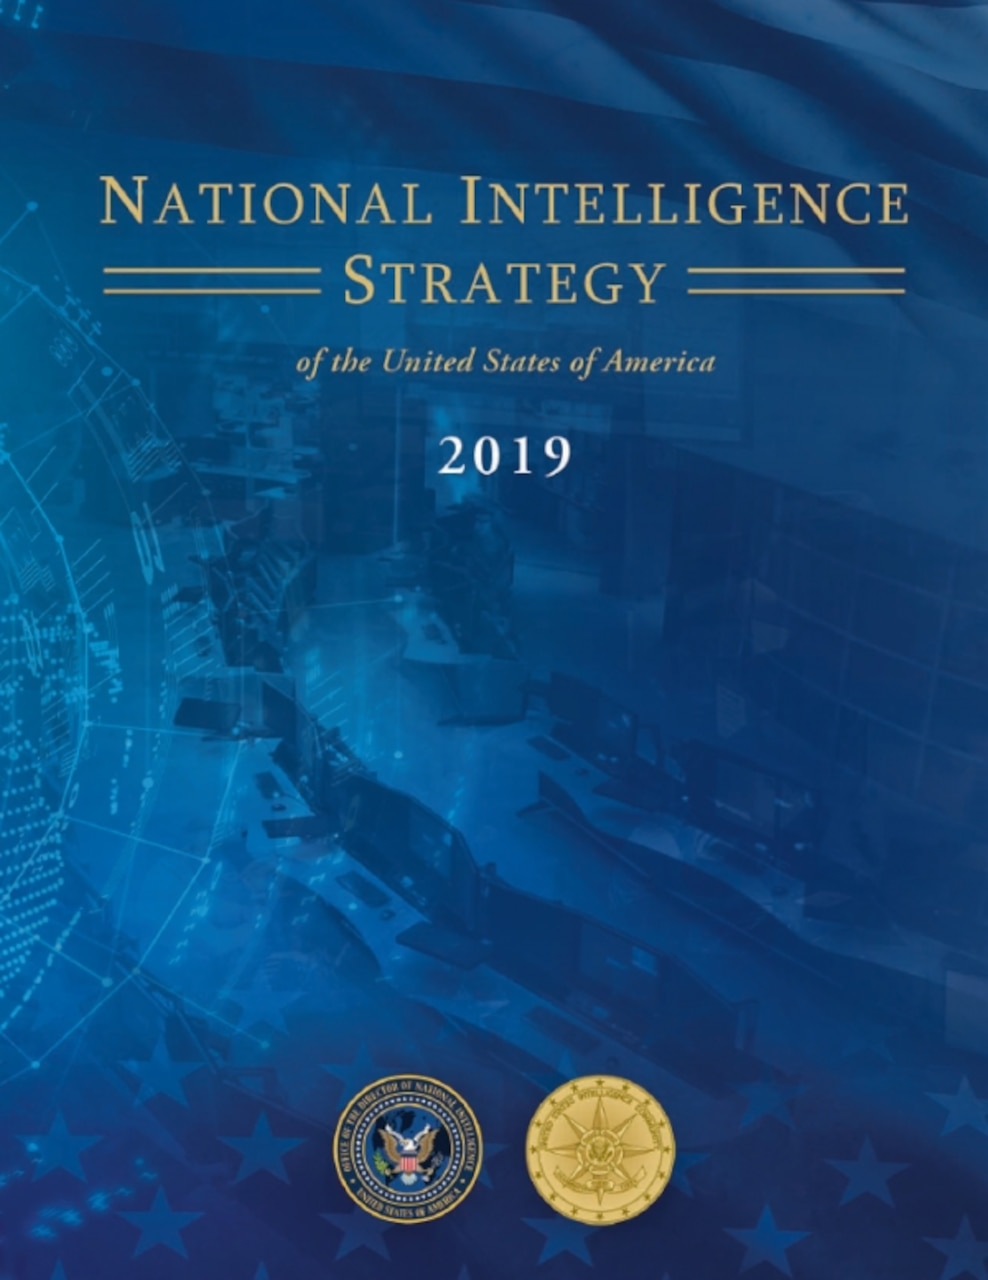 The 2019 National Intelligence Strategy aims at encouraging innovation and sharing information and intelligence among like-minded nations, the director of national intelligence said.